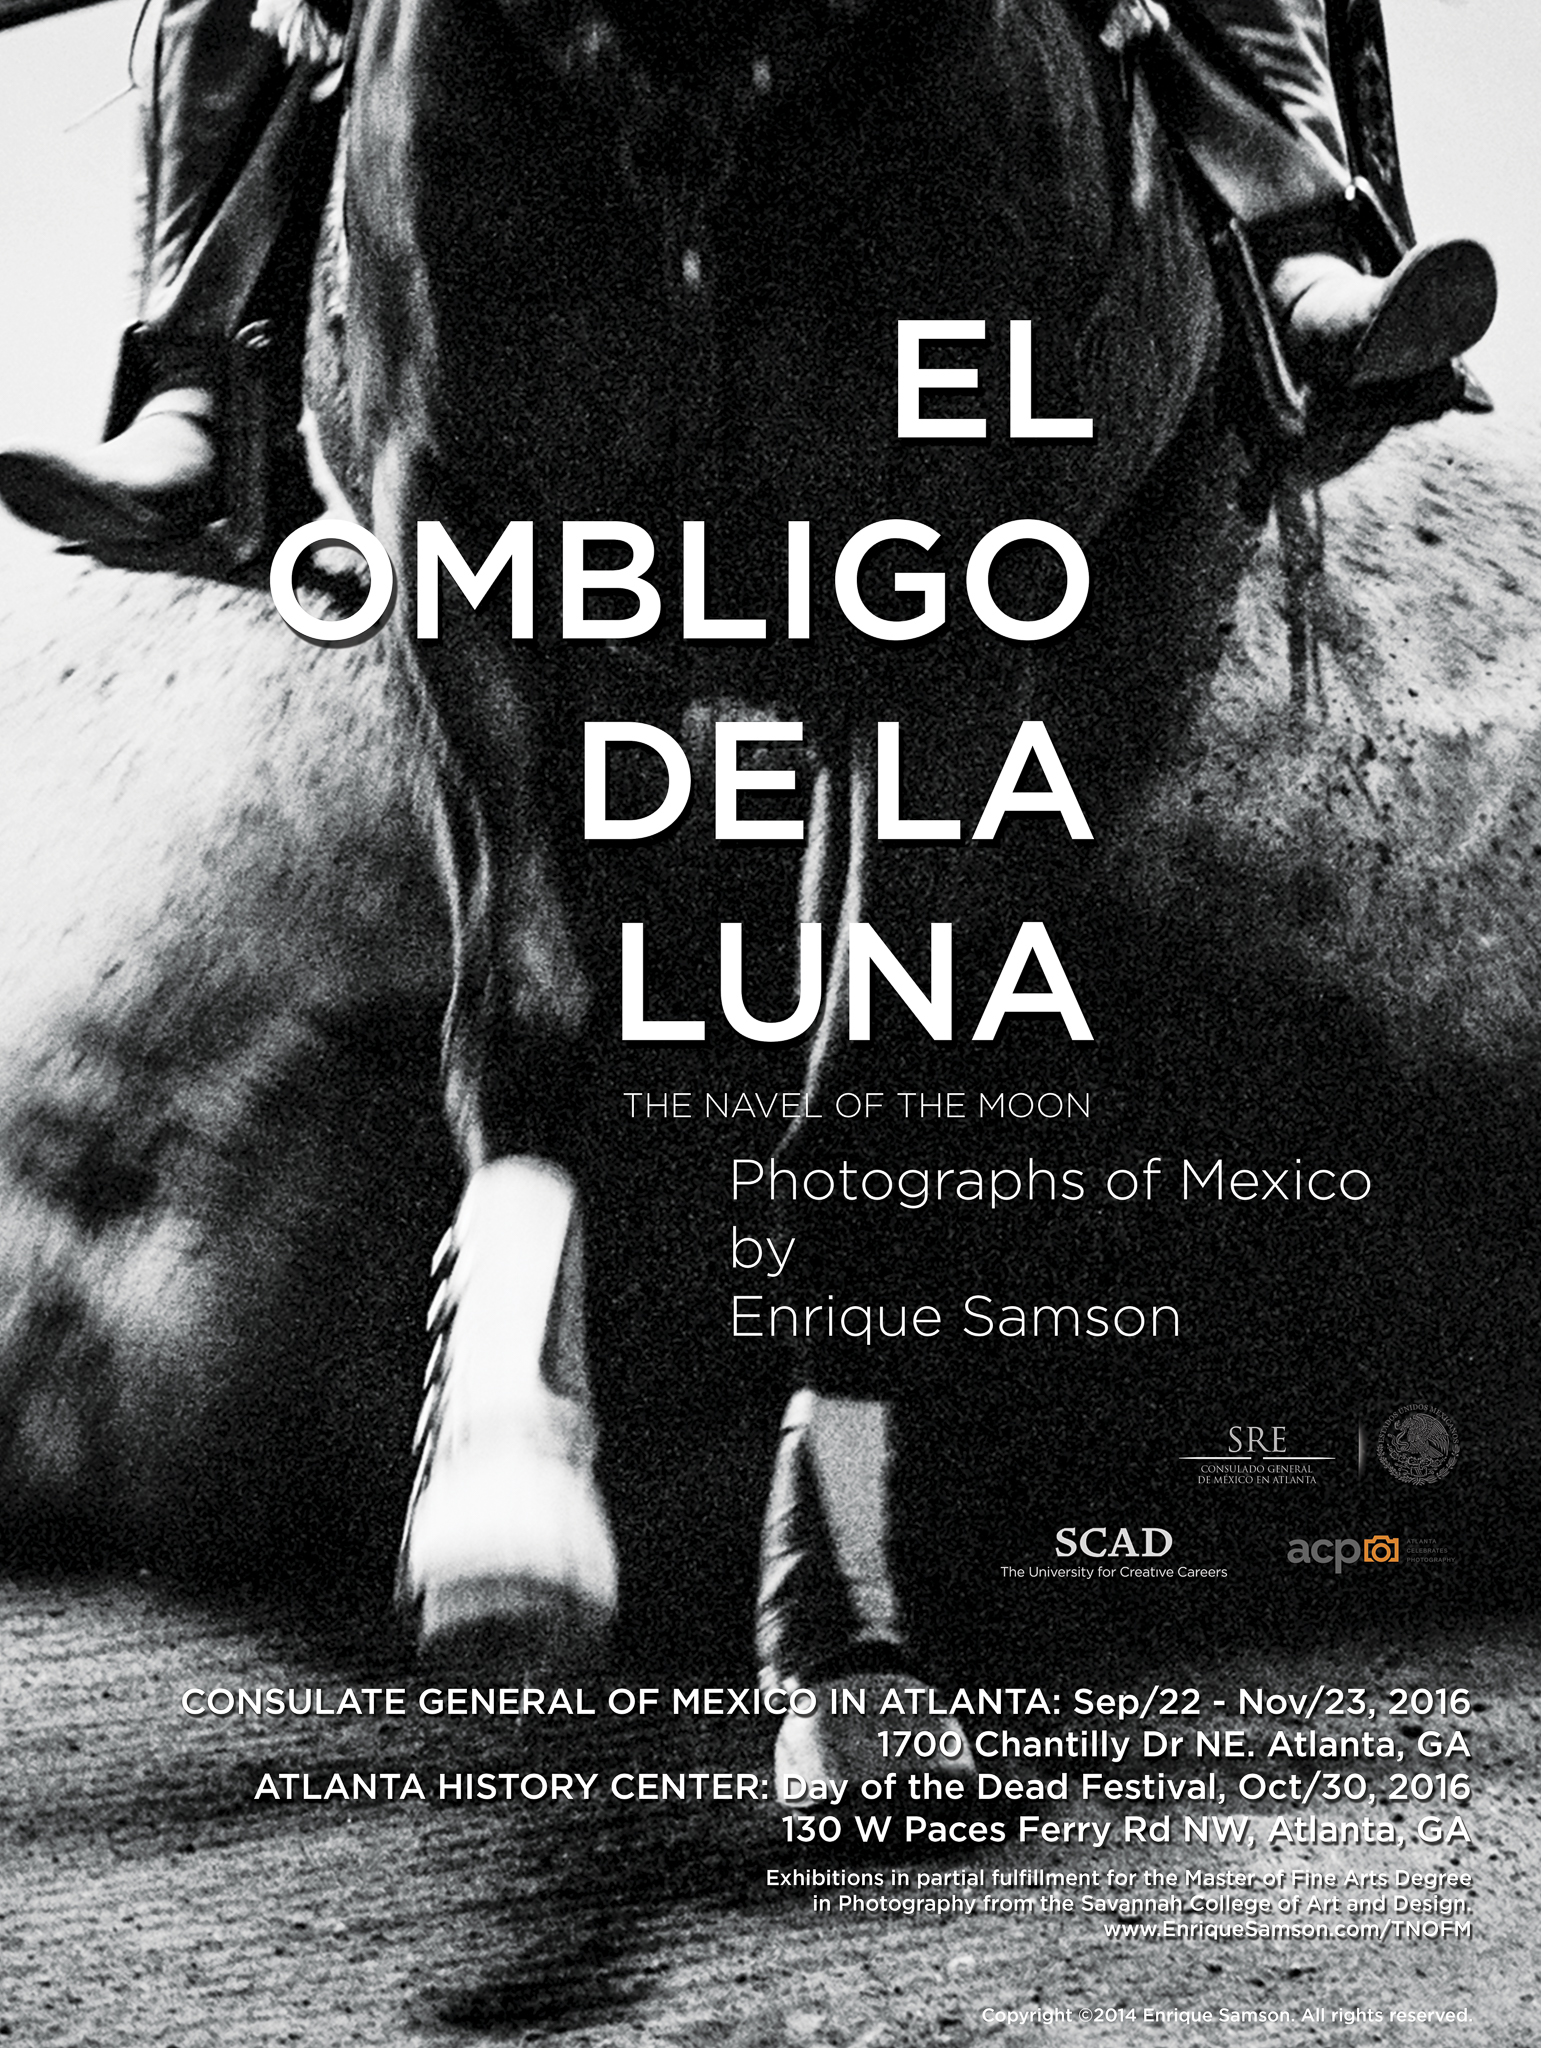 The navel of the moon' photographs of Mexico by Enrique